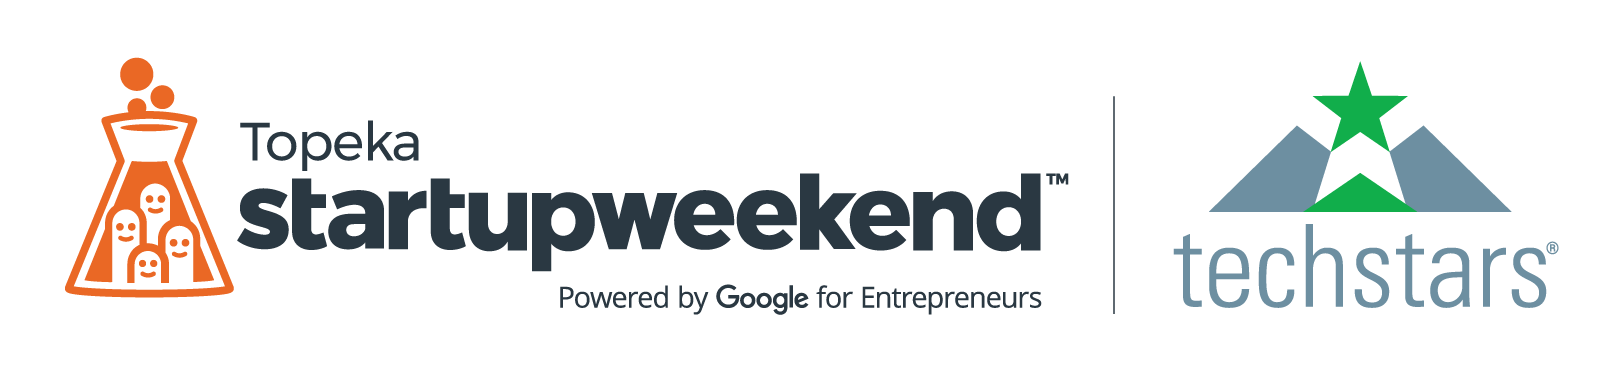 New Startup Weekend Logo 2017